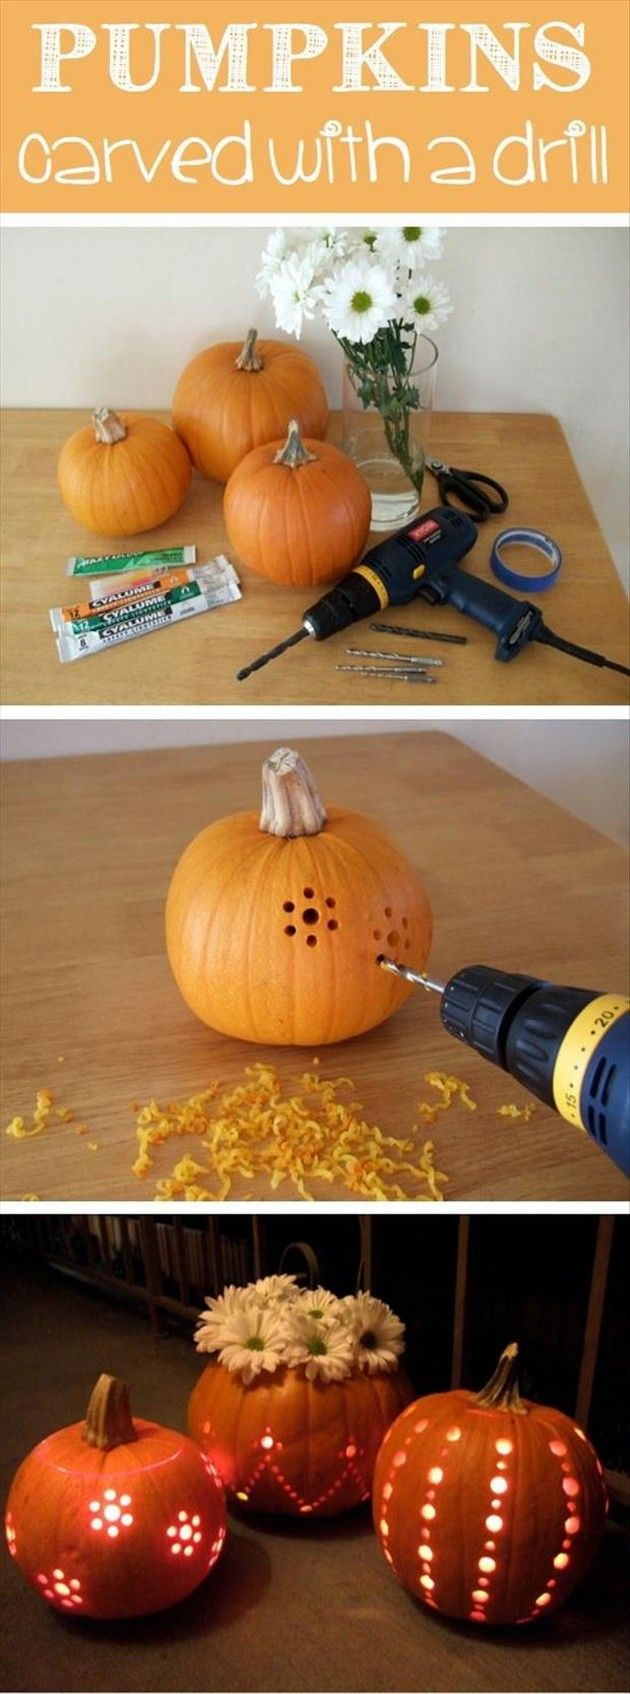 187 best images about Jack O' Lantern Ideas on Pinterest